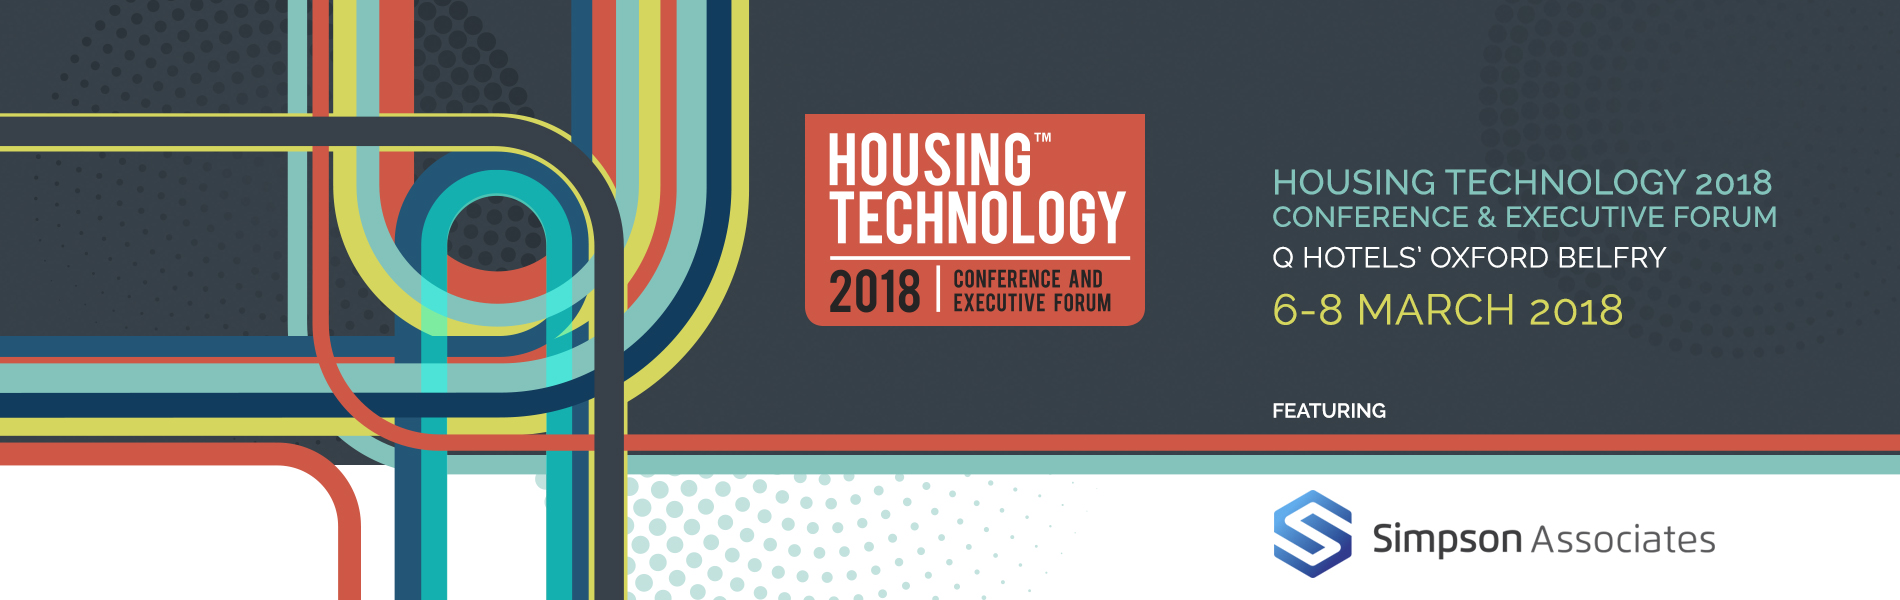 Housing Technology Conference 2018